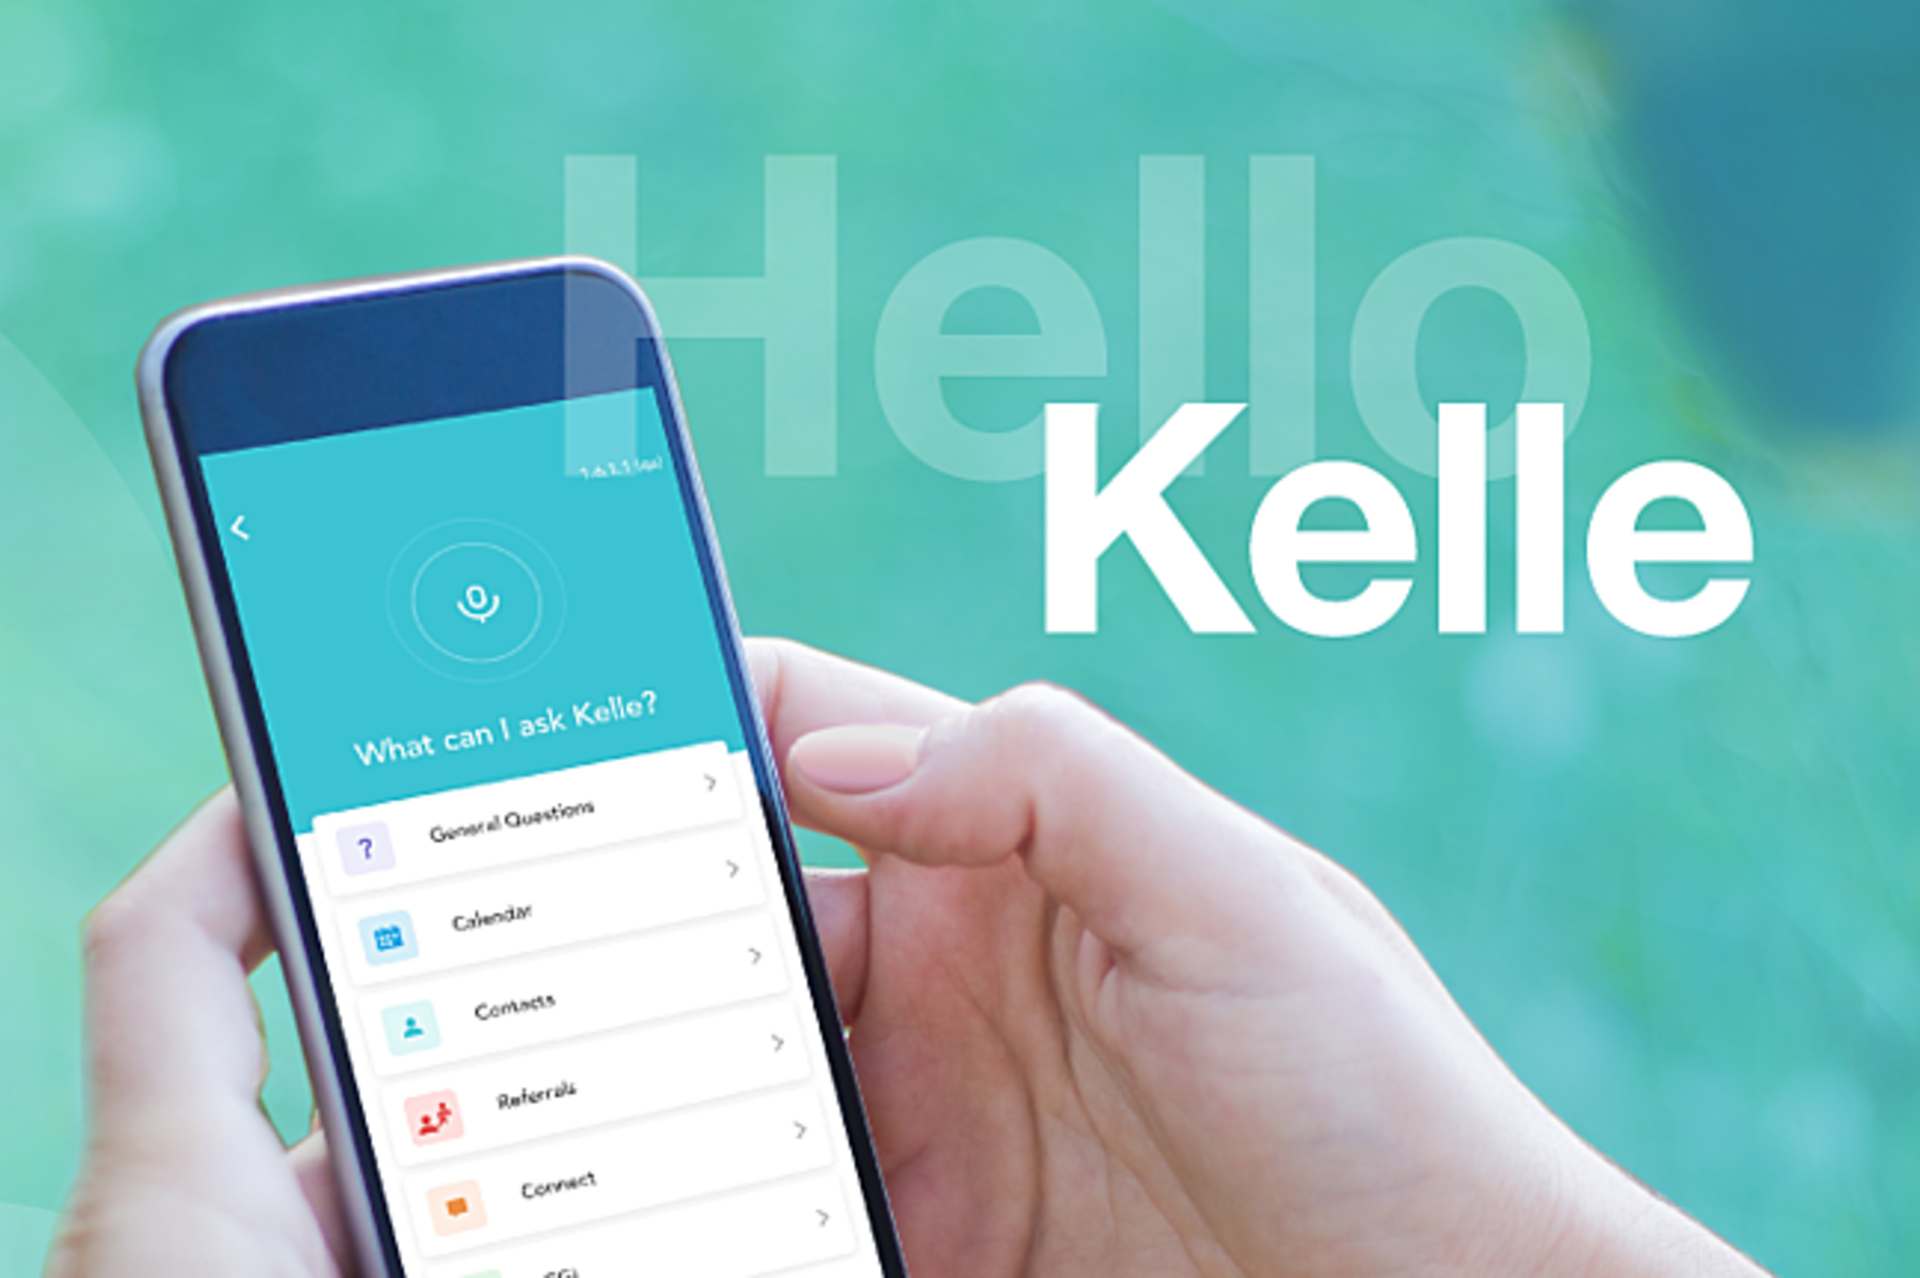 HOW KELLE IS CHANGING THE GAME FOR REAL ESTATE CONSUMERS